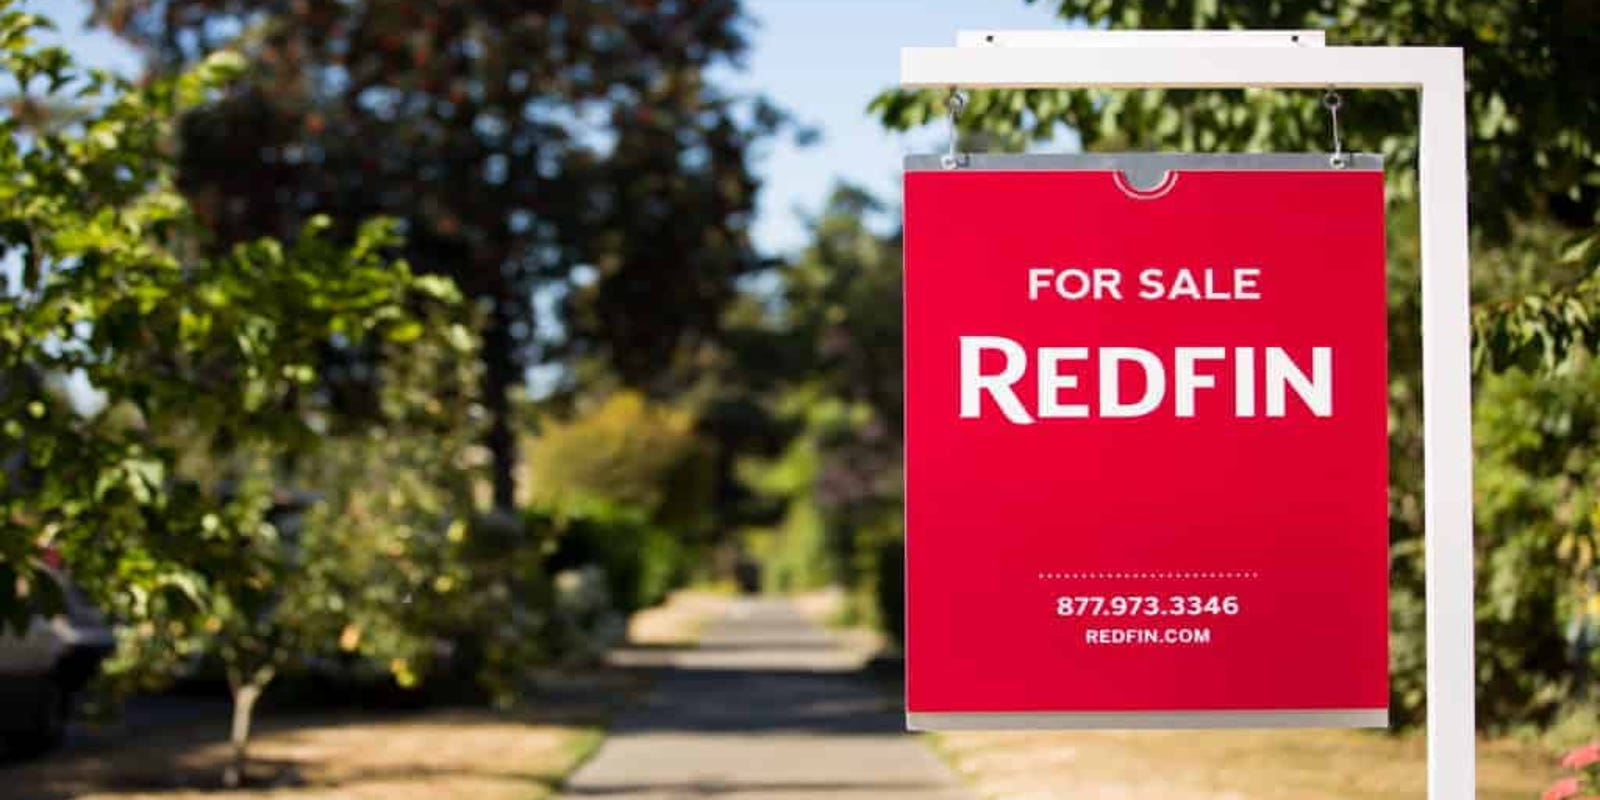 Fair housing groups sue Redfin with allegations of 'redlining' minority communities